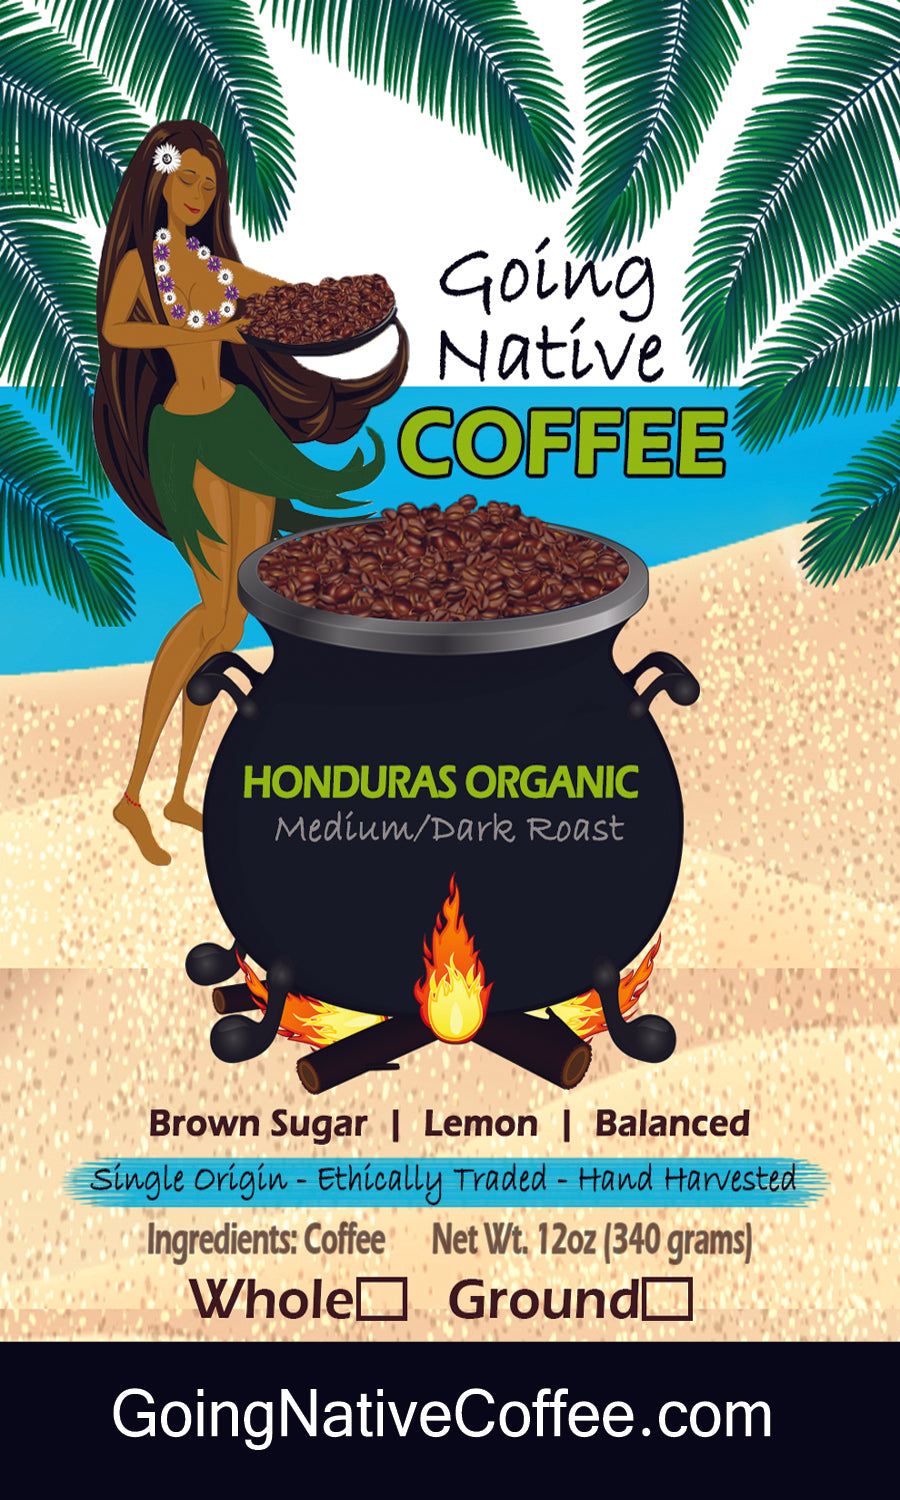 Honduras Organic SHG, EP - Going Native Coffee Club